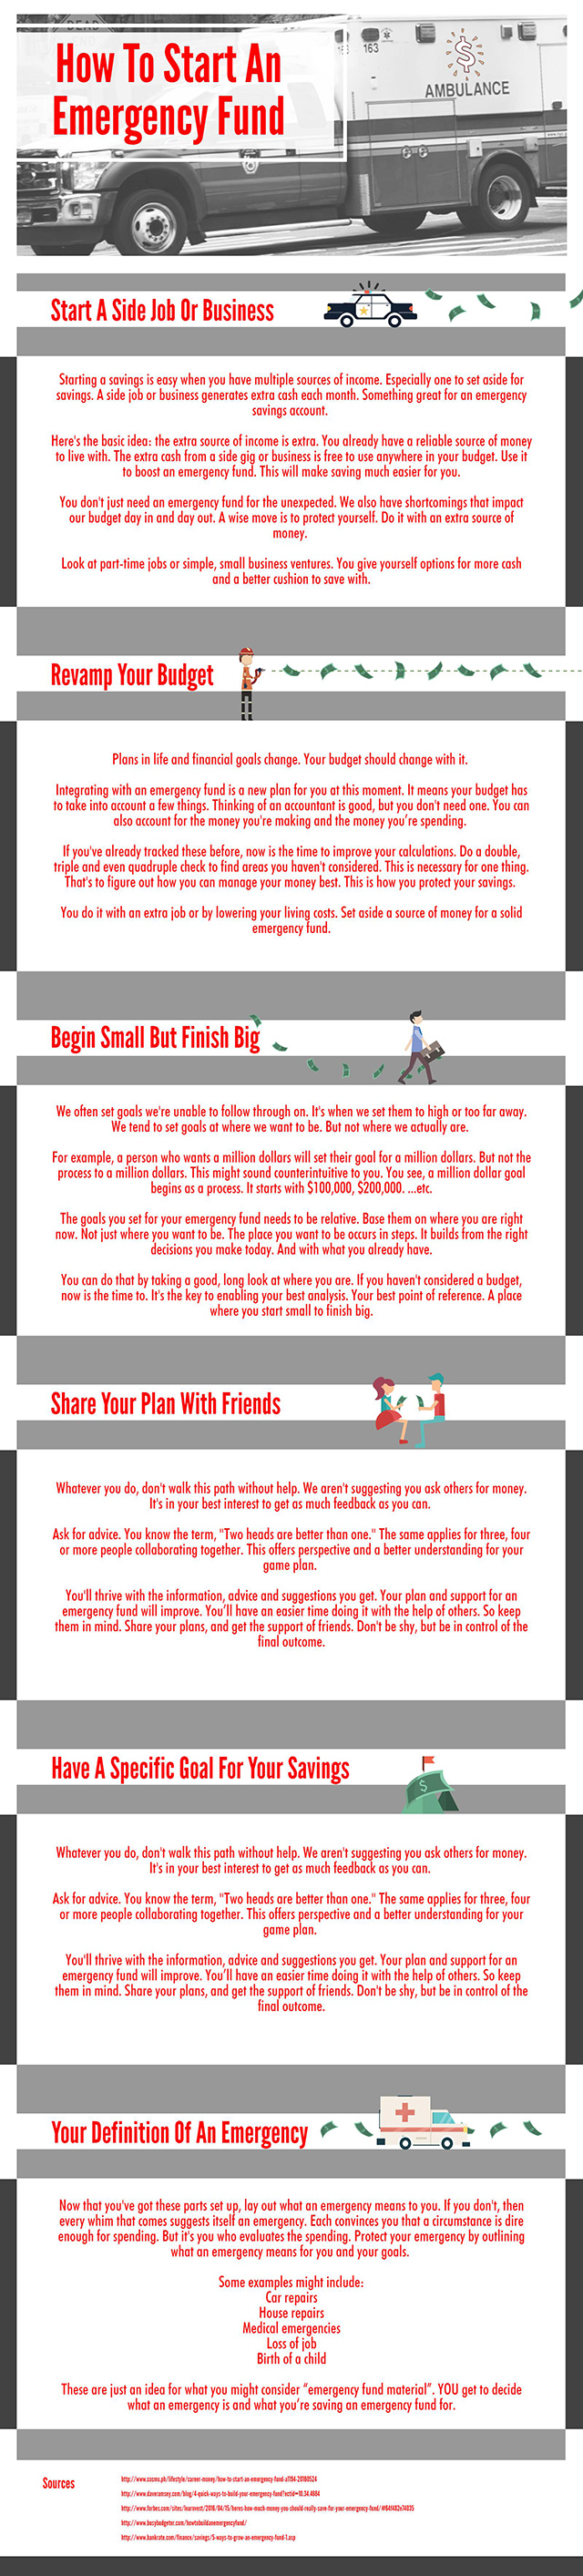 How To Start An Emergency Fund - Infographic